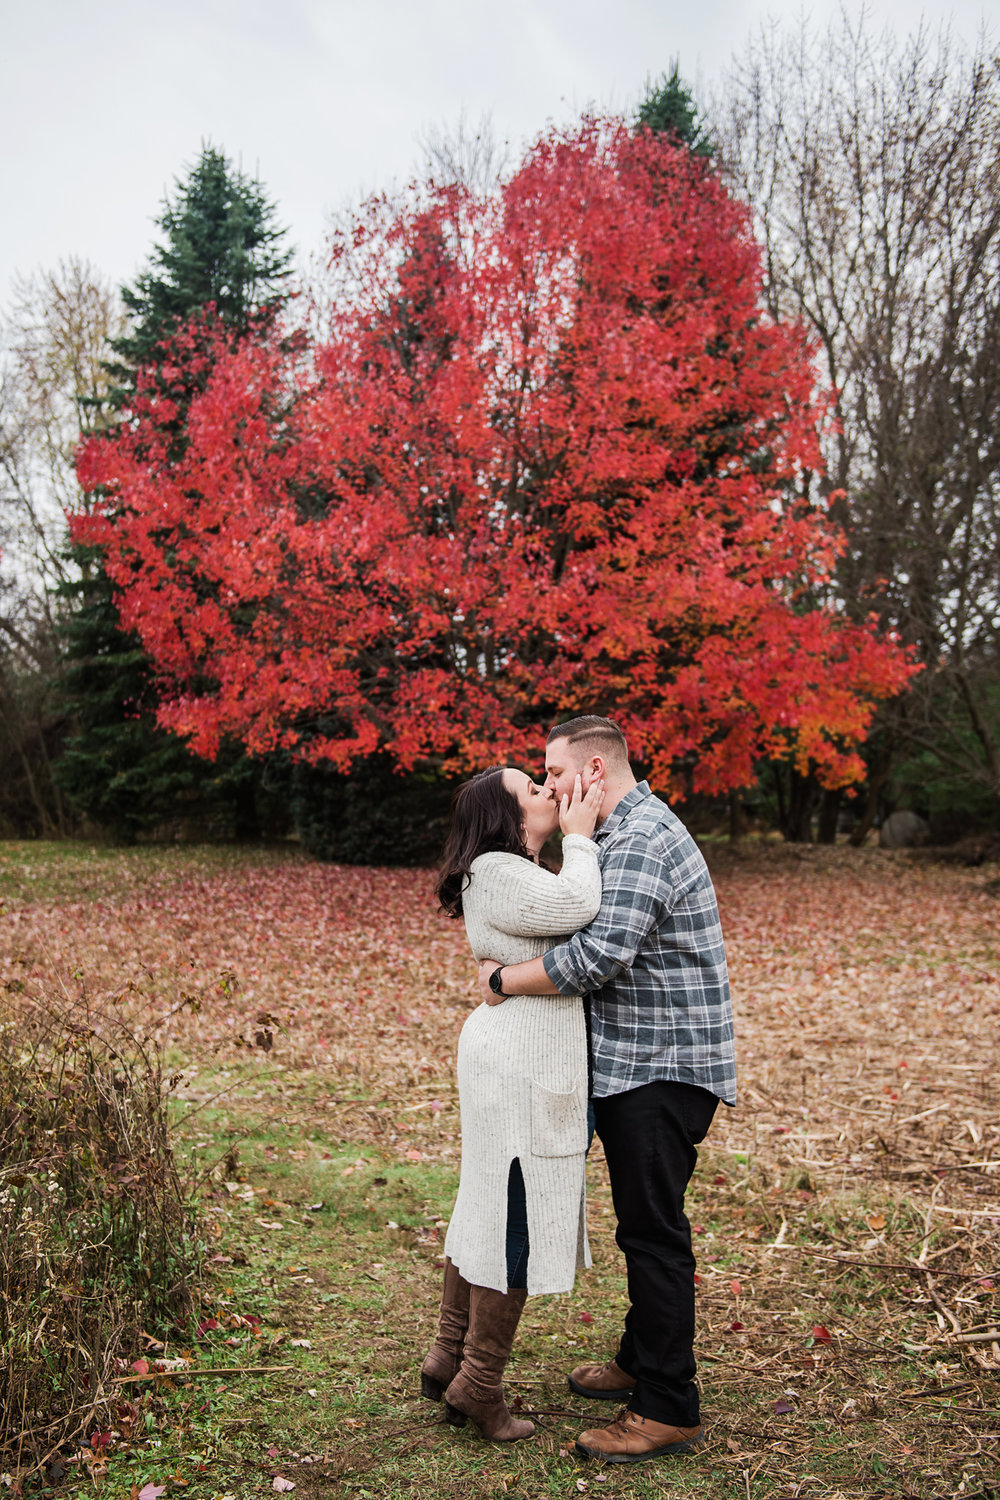 Tinker_Nature_Park_Rochester_Engagement_Session_JILL_STUDIO_Rochester_NY_Photographer_DSC_0427.jpg